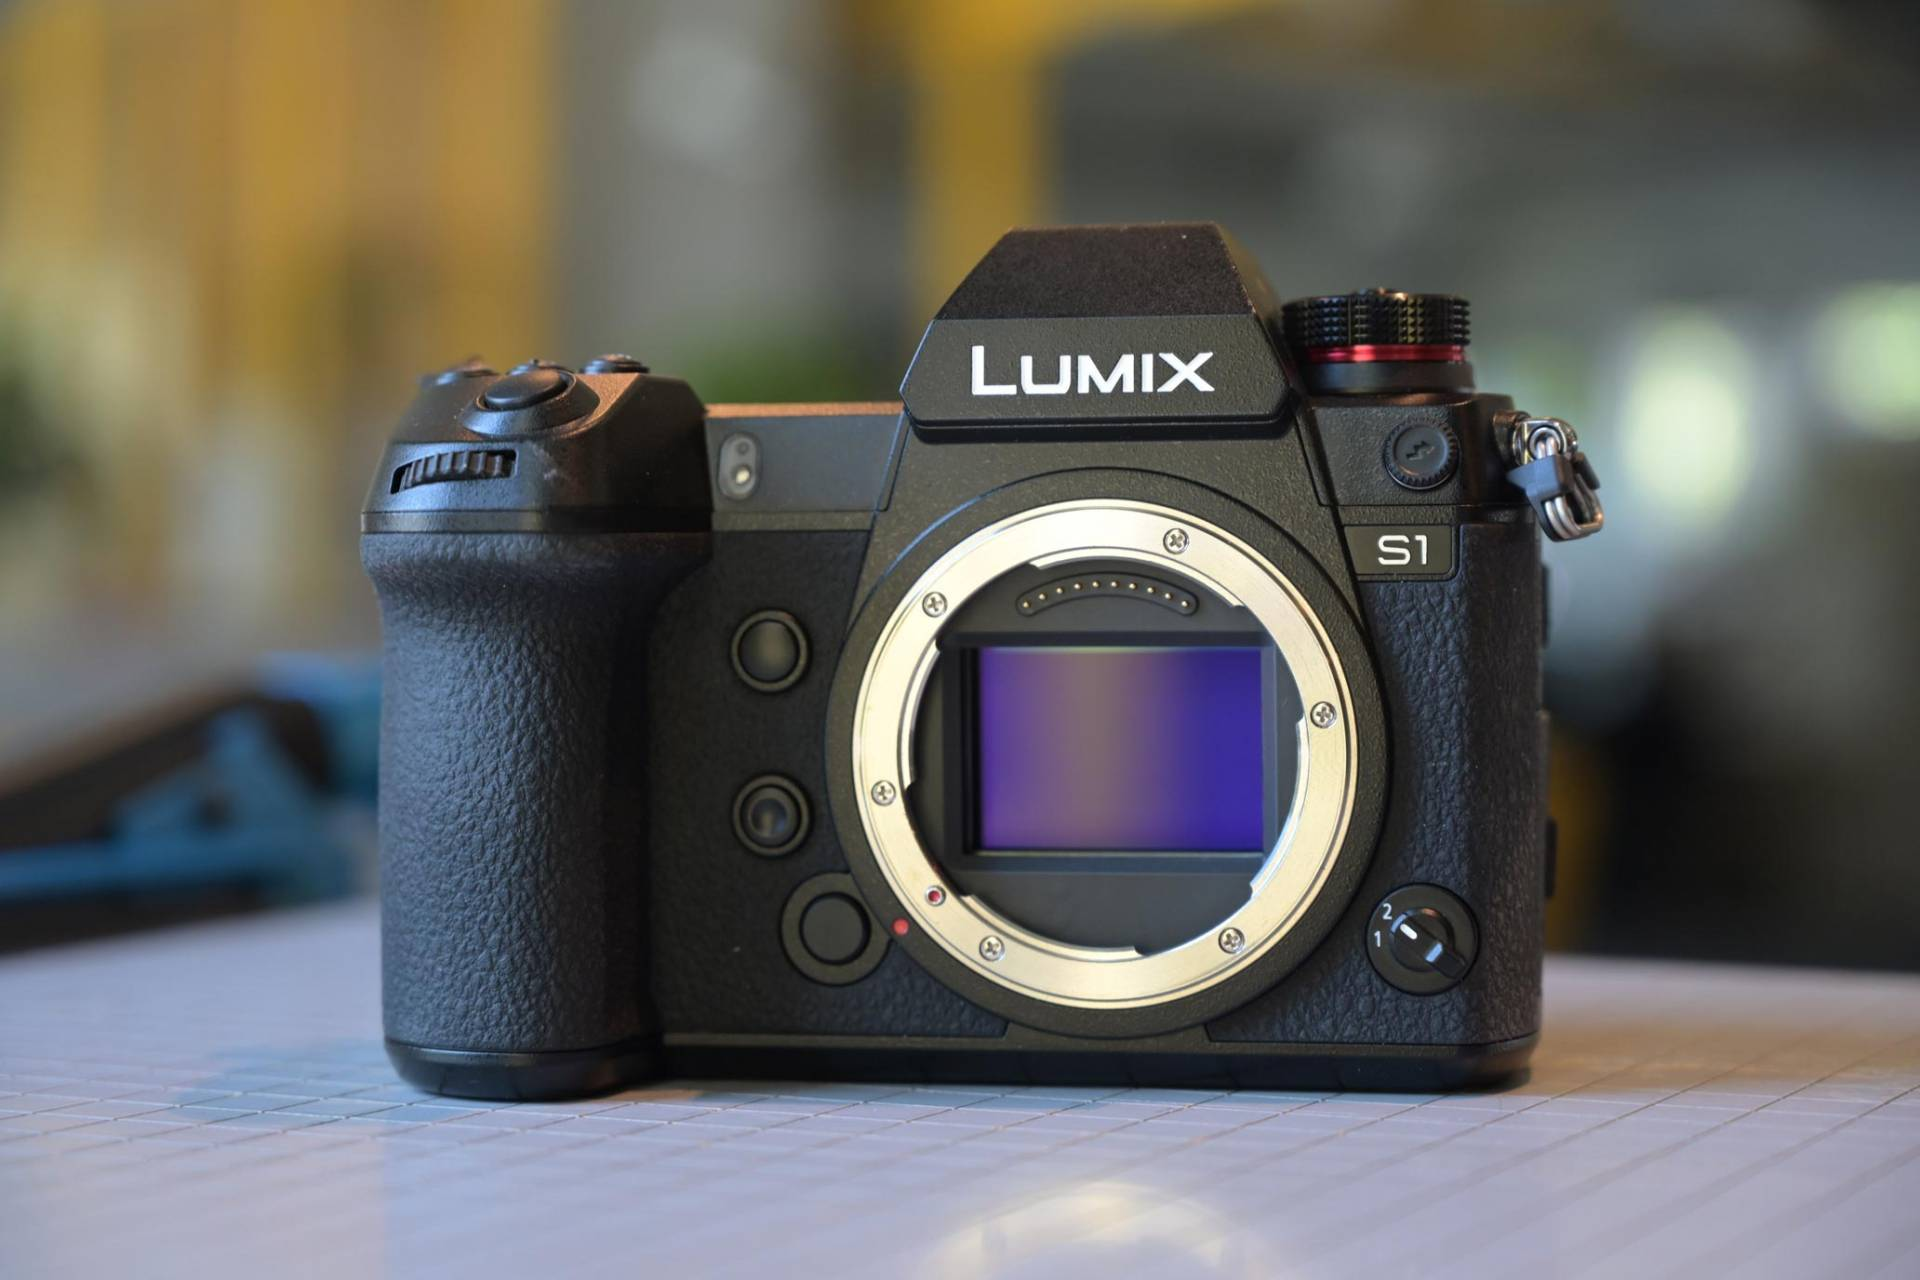 Pansonic Lumix S1 review - front view of camera with sensor exposed